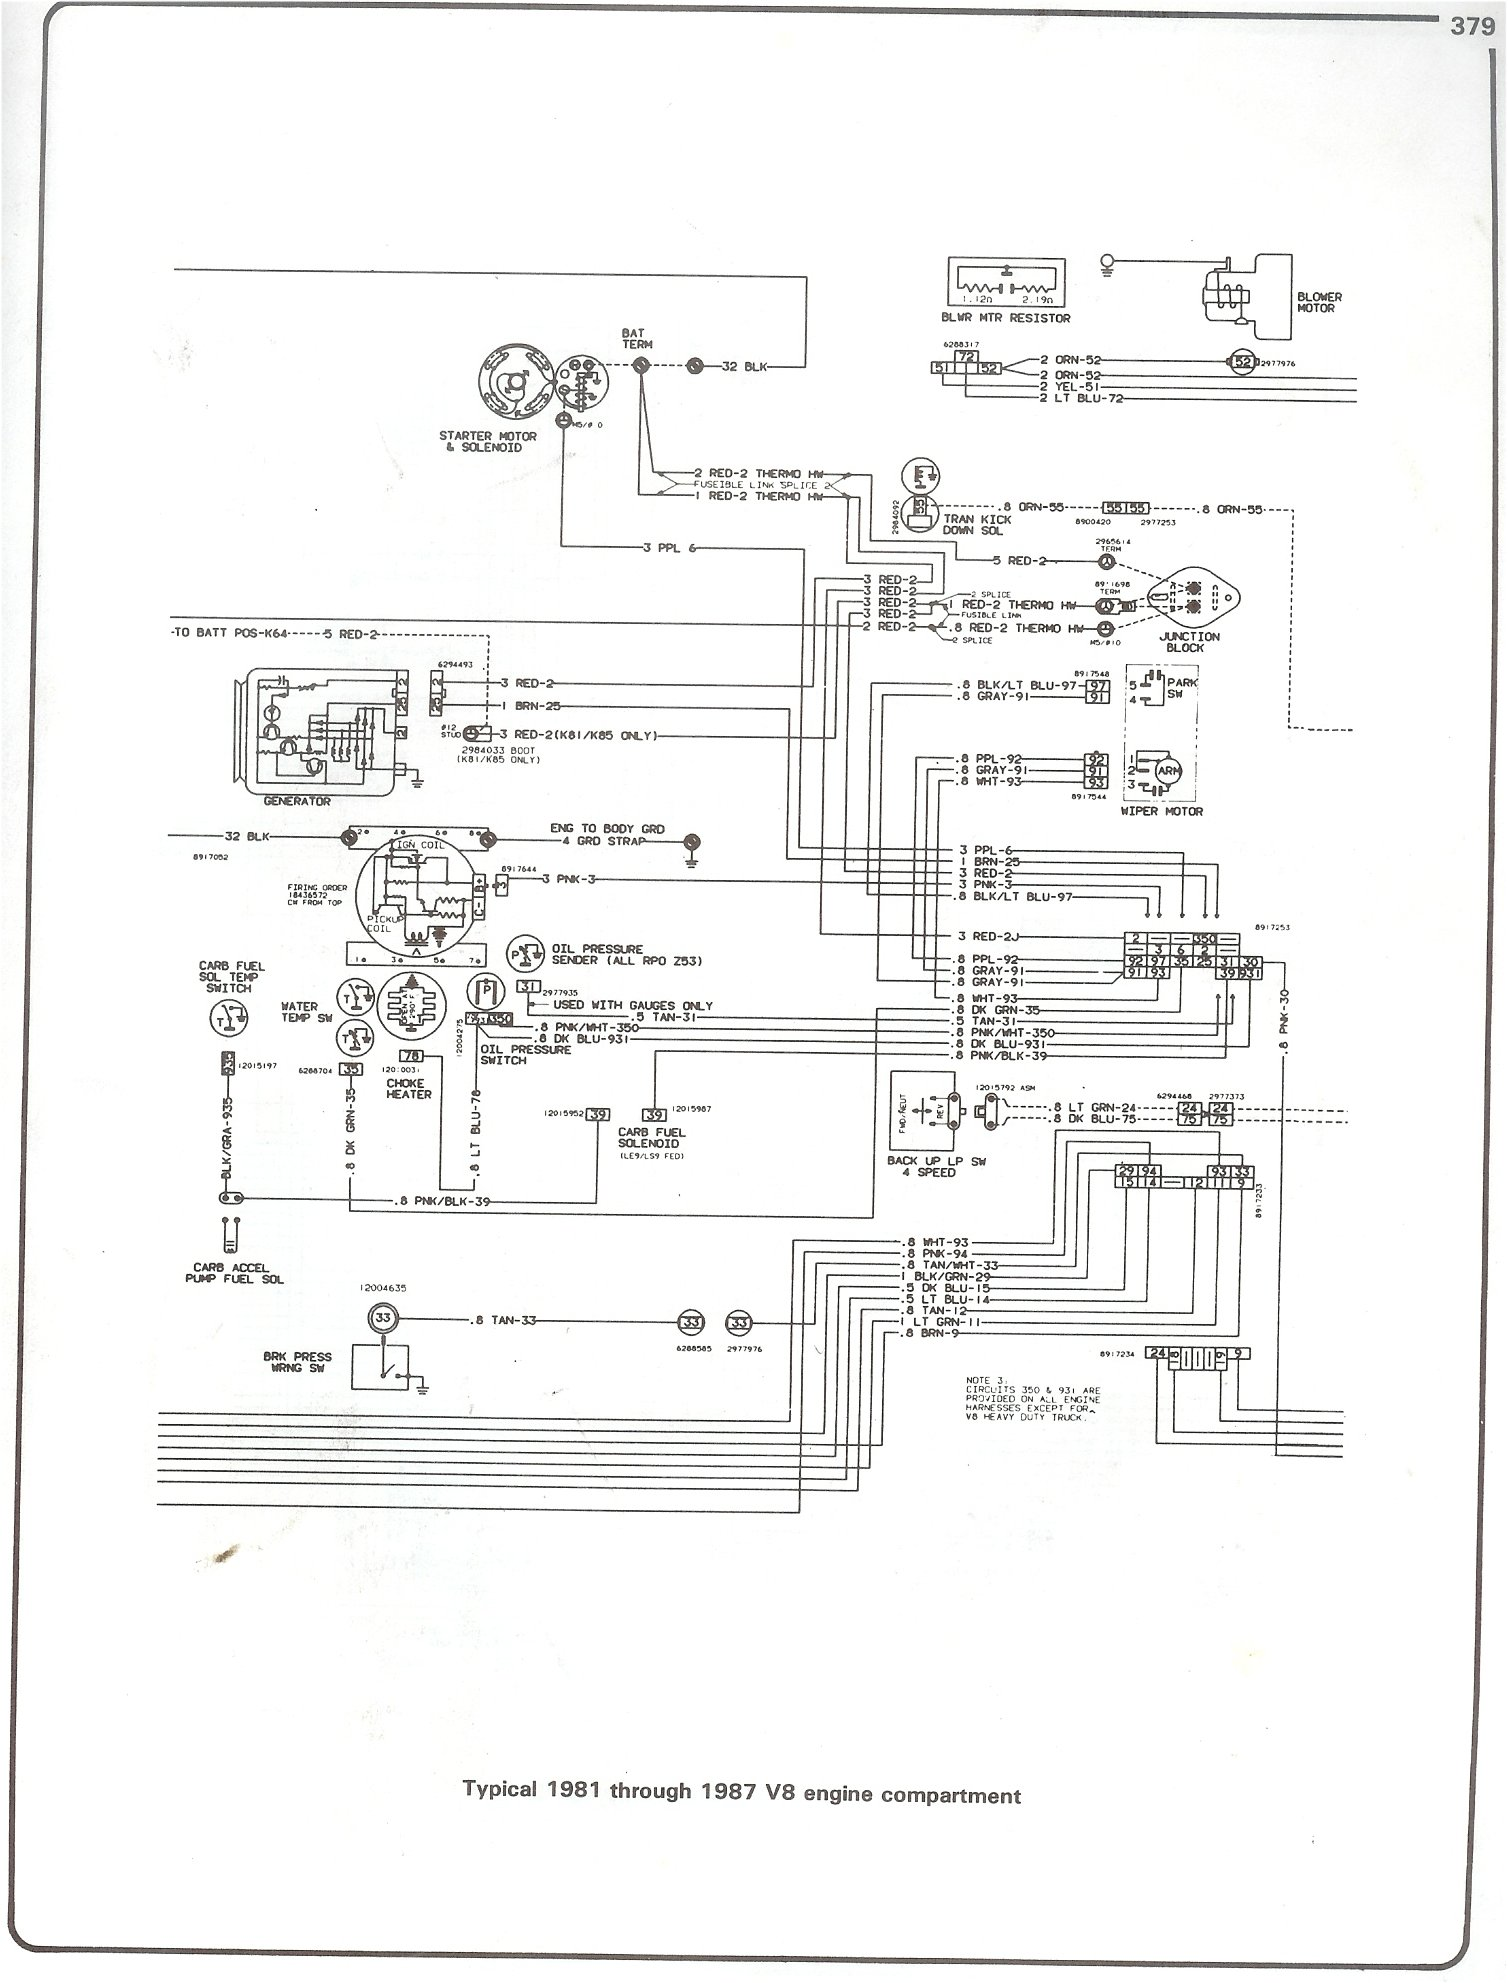 81 87_V8_engine complete 73 87 wiring diagrams 1996 C1500 Wiring Diagram at n-0.co